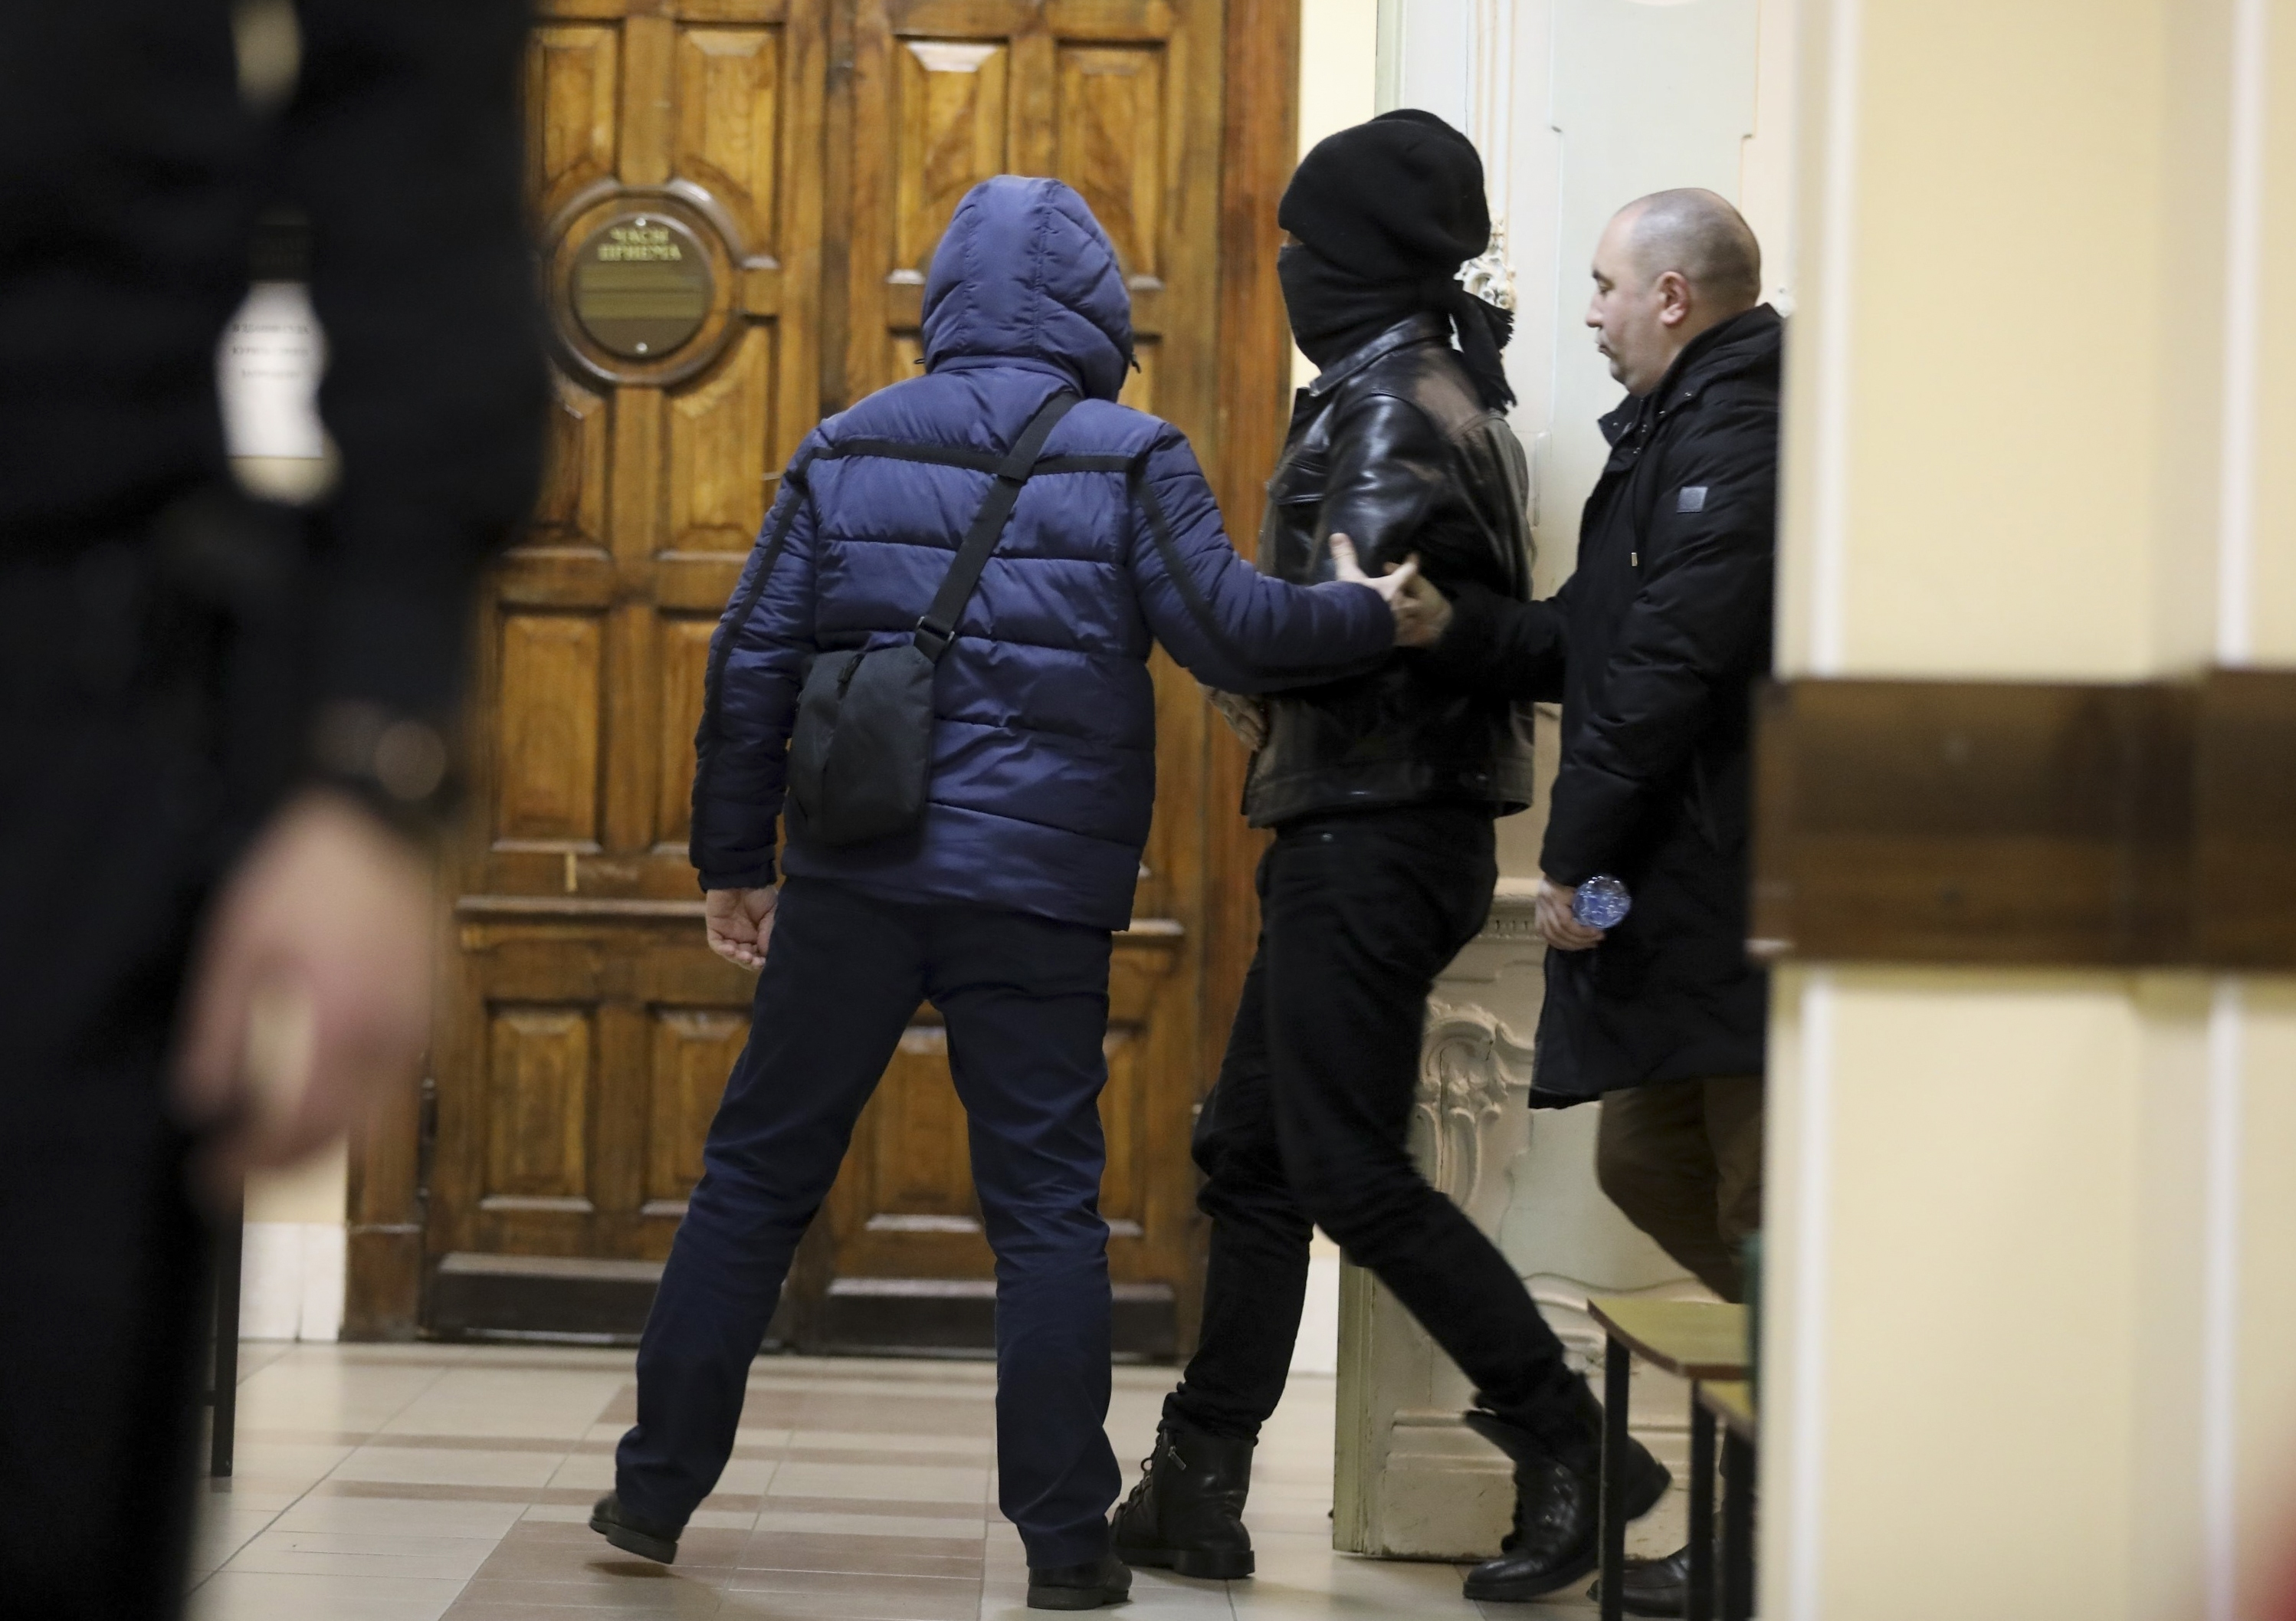 Russian court jails 2 terrorism suspects arrested on US tip